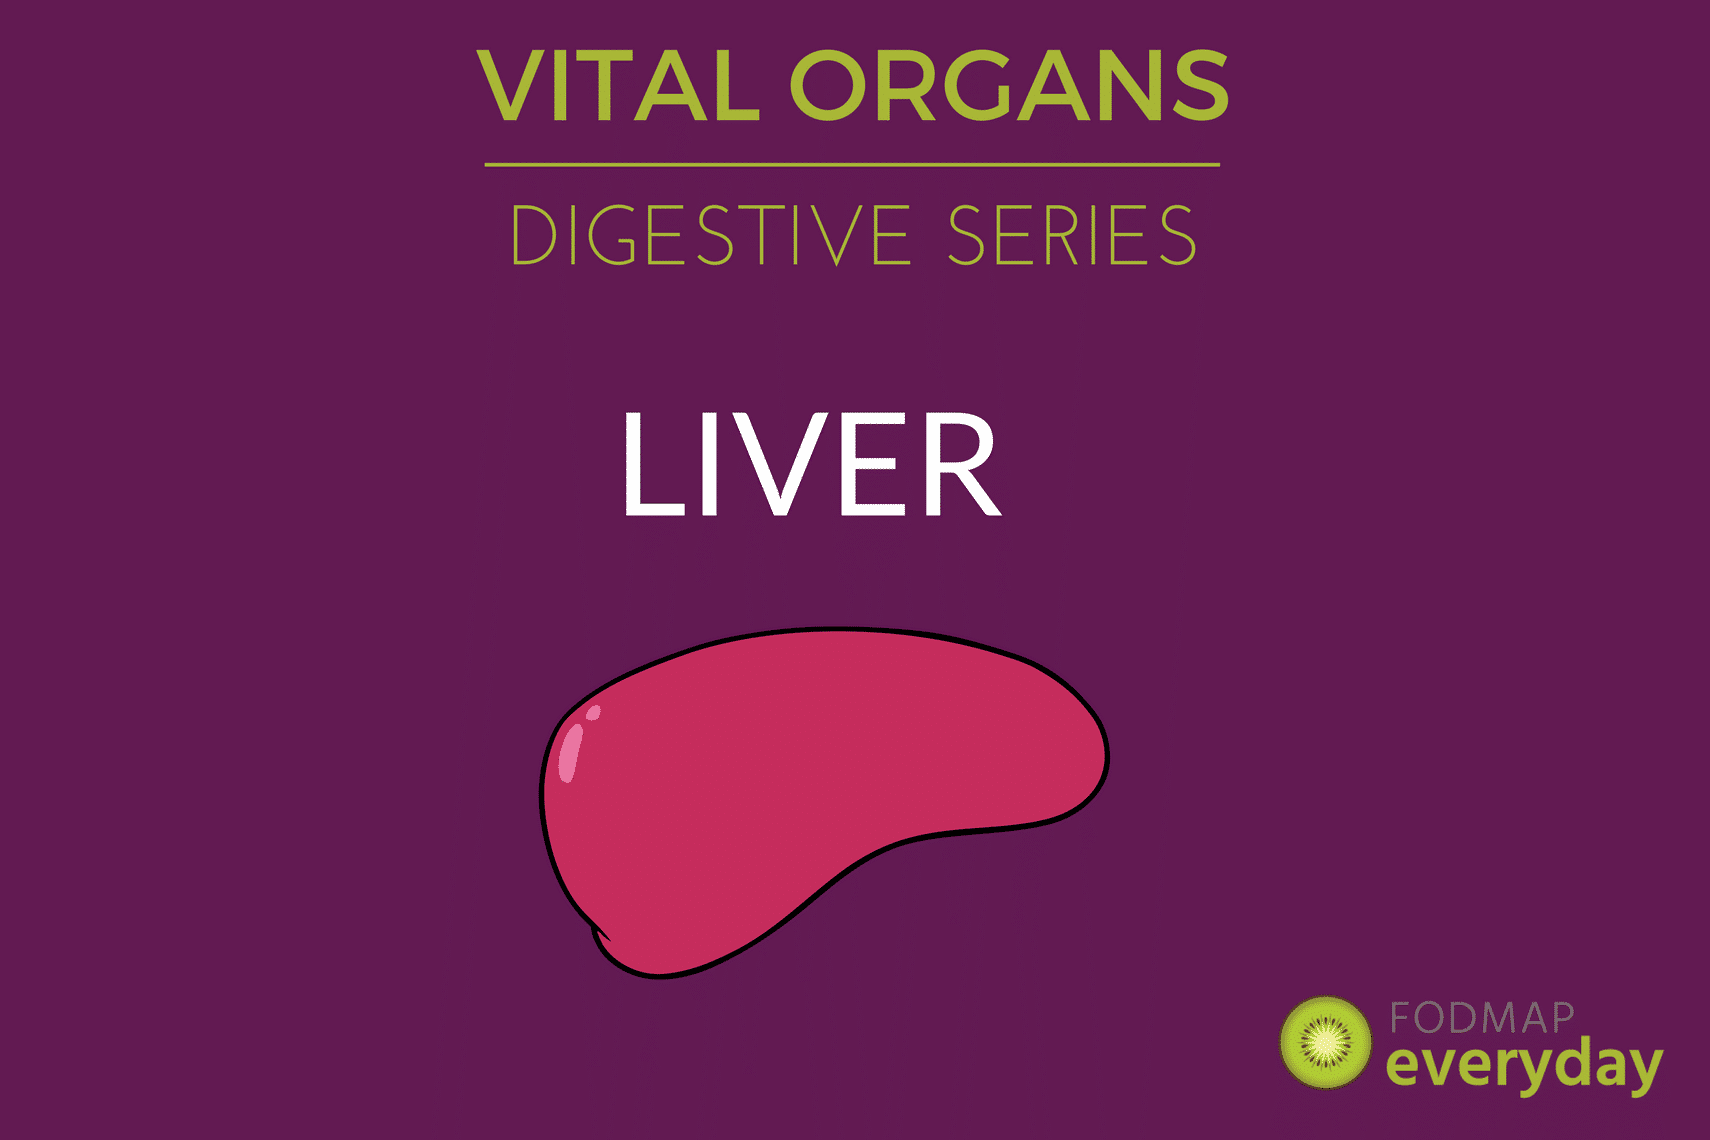 Vital organs digestion series intro fodmap everyday vital organs digestive series the liver ccuart Choice Image